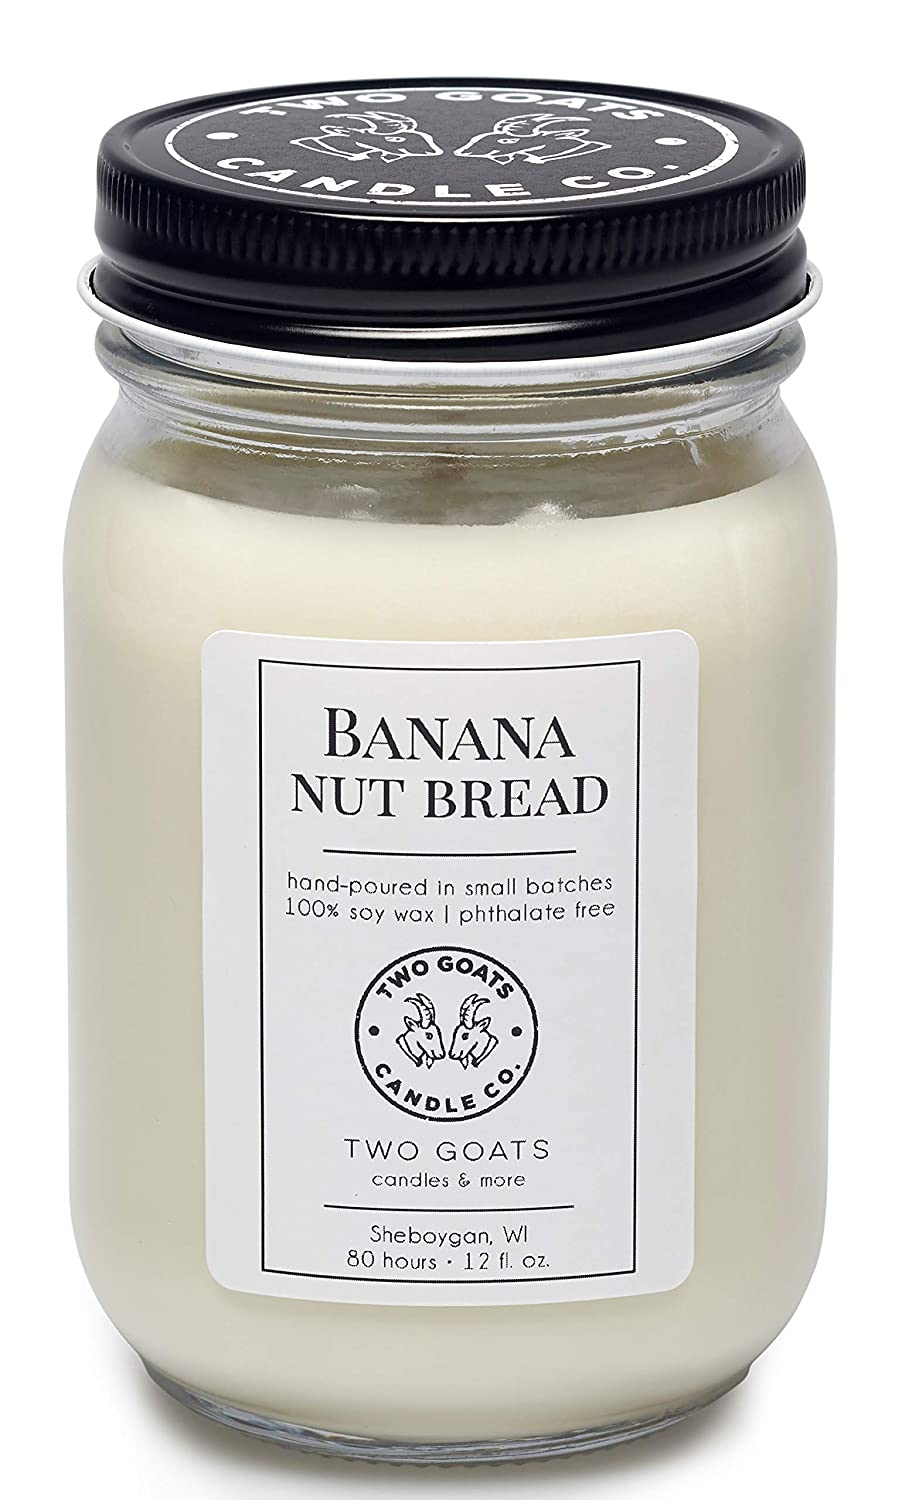 Banana Max 63% OFF Nut Bread Scented Soy Candle USA Hand in the 2021 spring and summer new 1 Poured